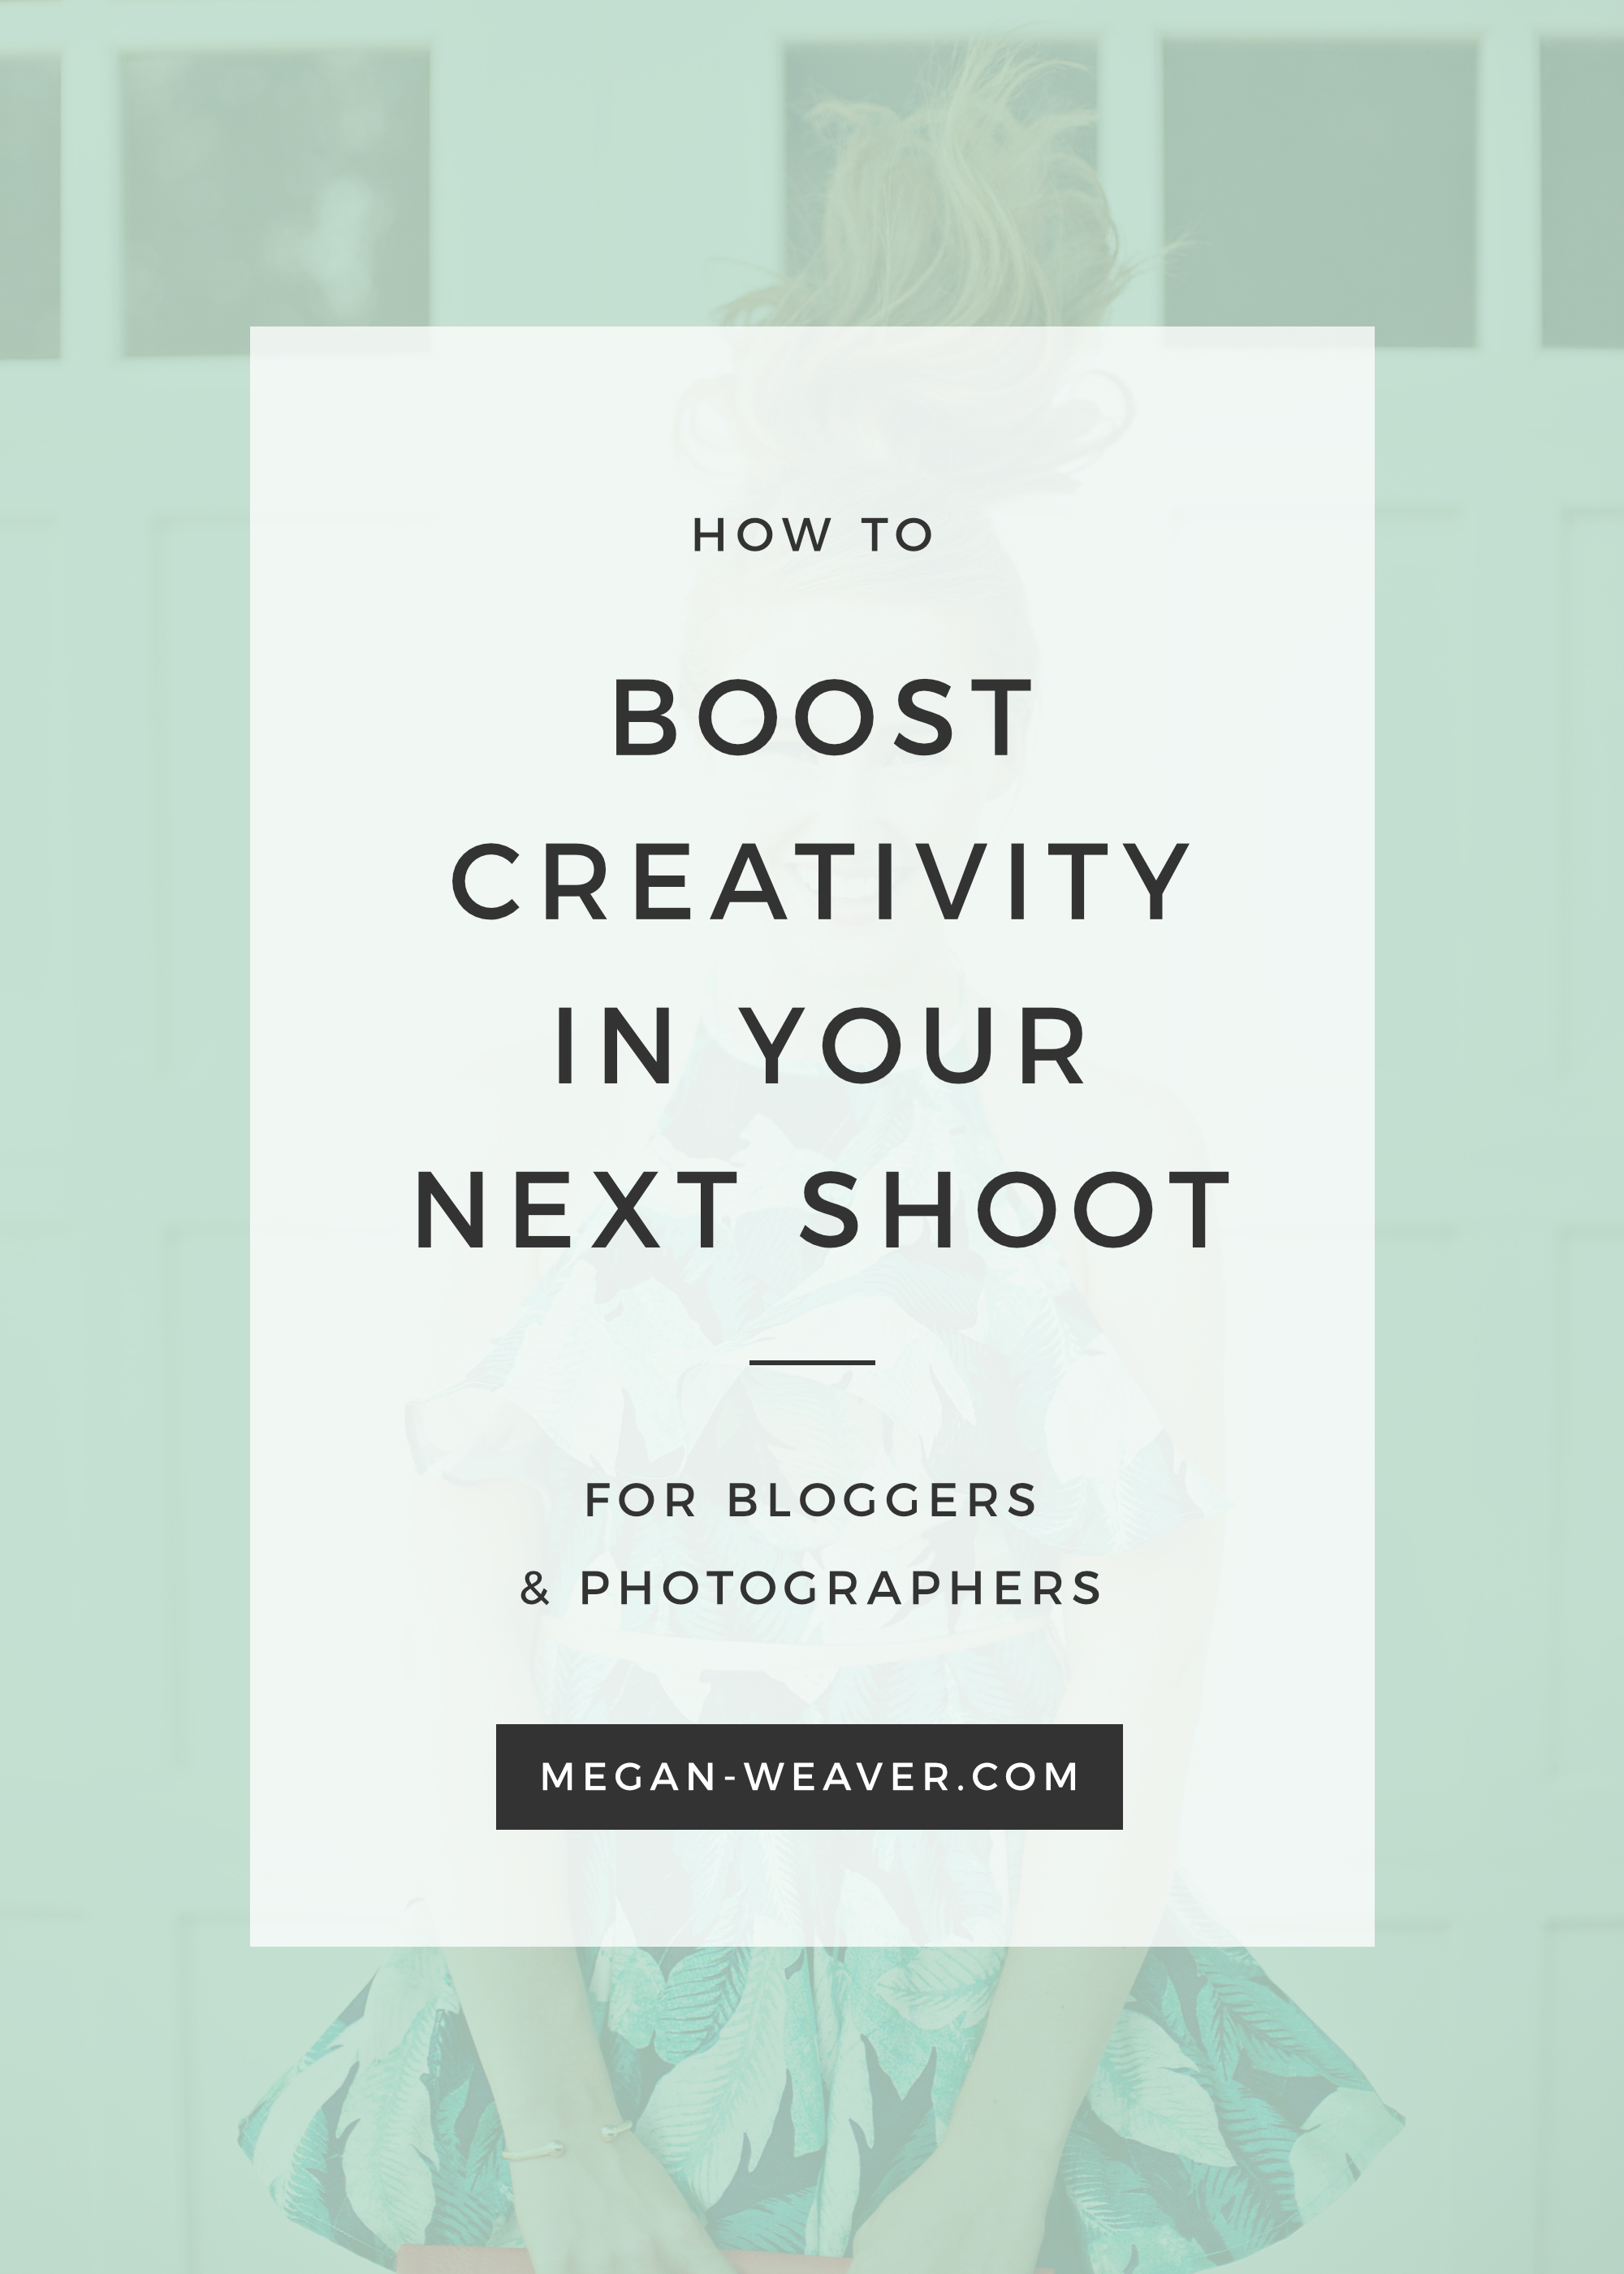 Stand apart from the crowd and let your blog photos shine. How to boost creativity in your next shoot.